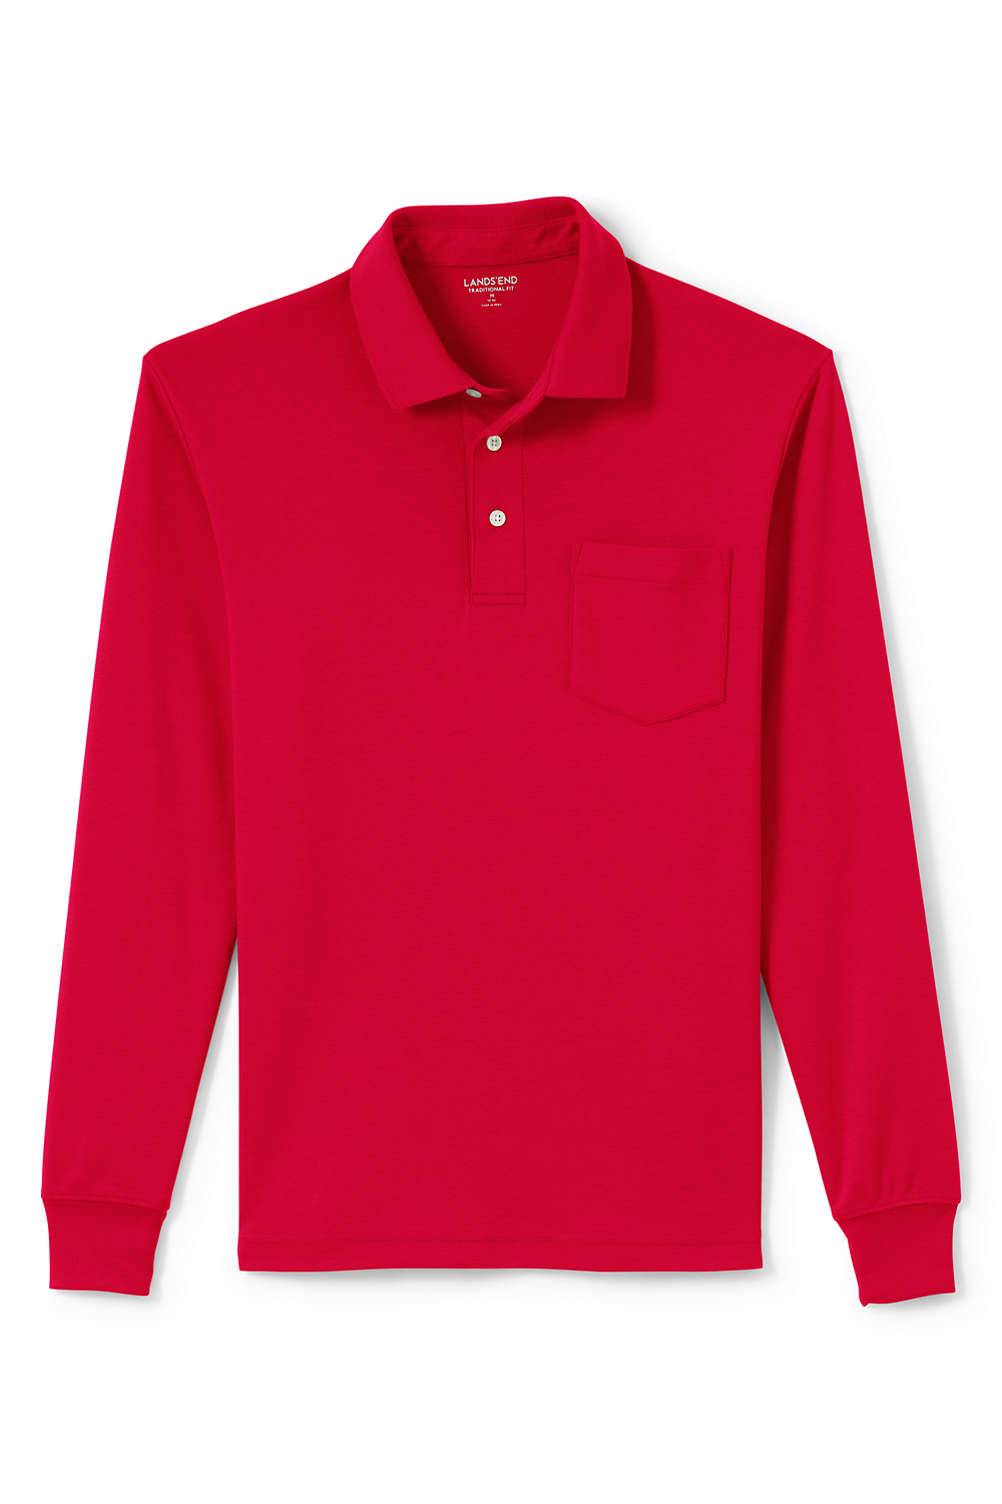 07e70f6a9ca Men's Supima Long Sleeve Polo Shirt with Pocket from Lands' End